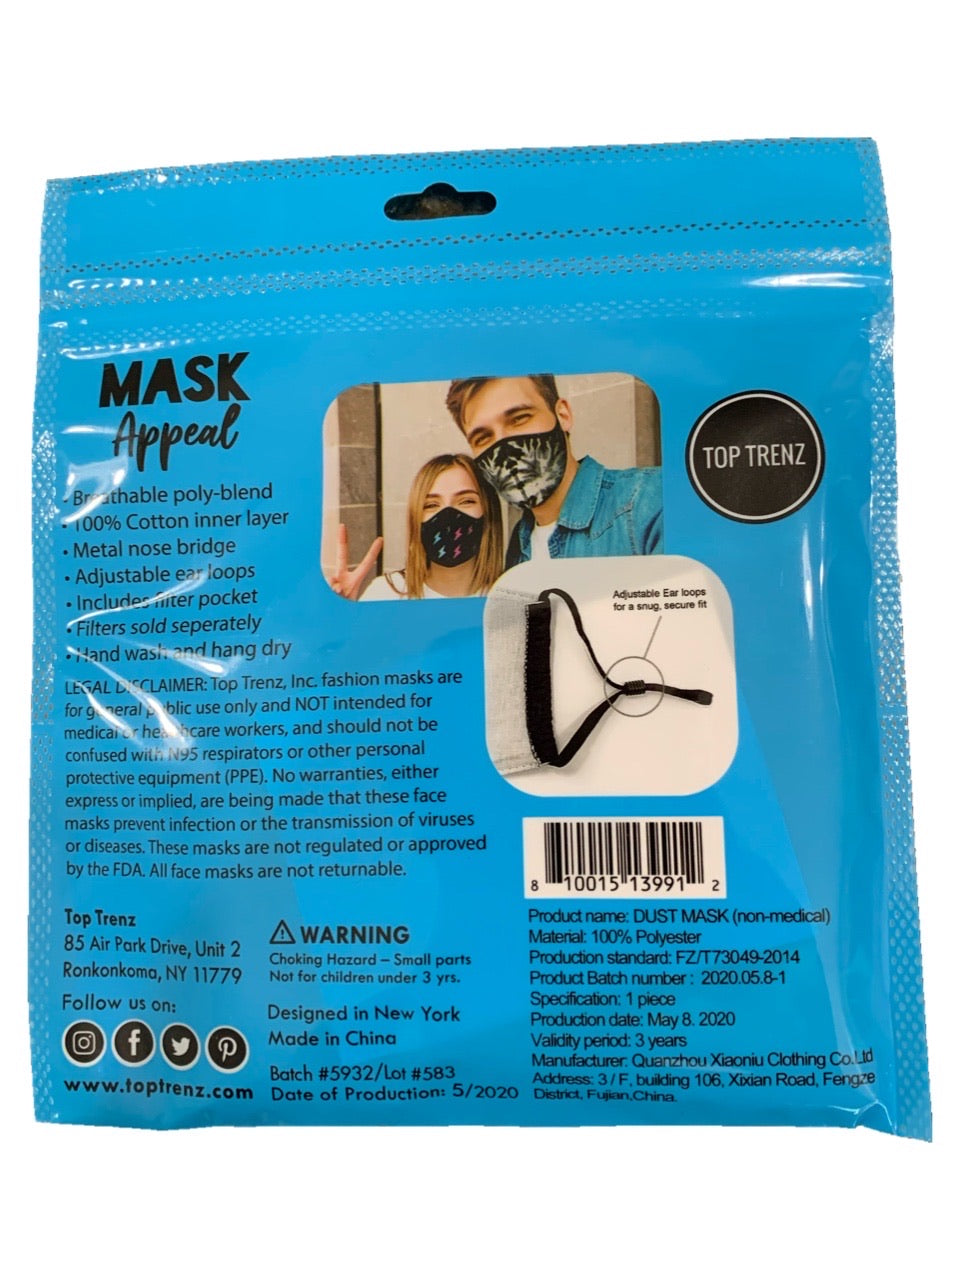 TOP TRENZ SPRINKKLES MASK - AGES 8+